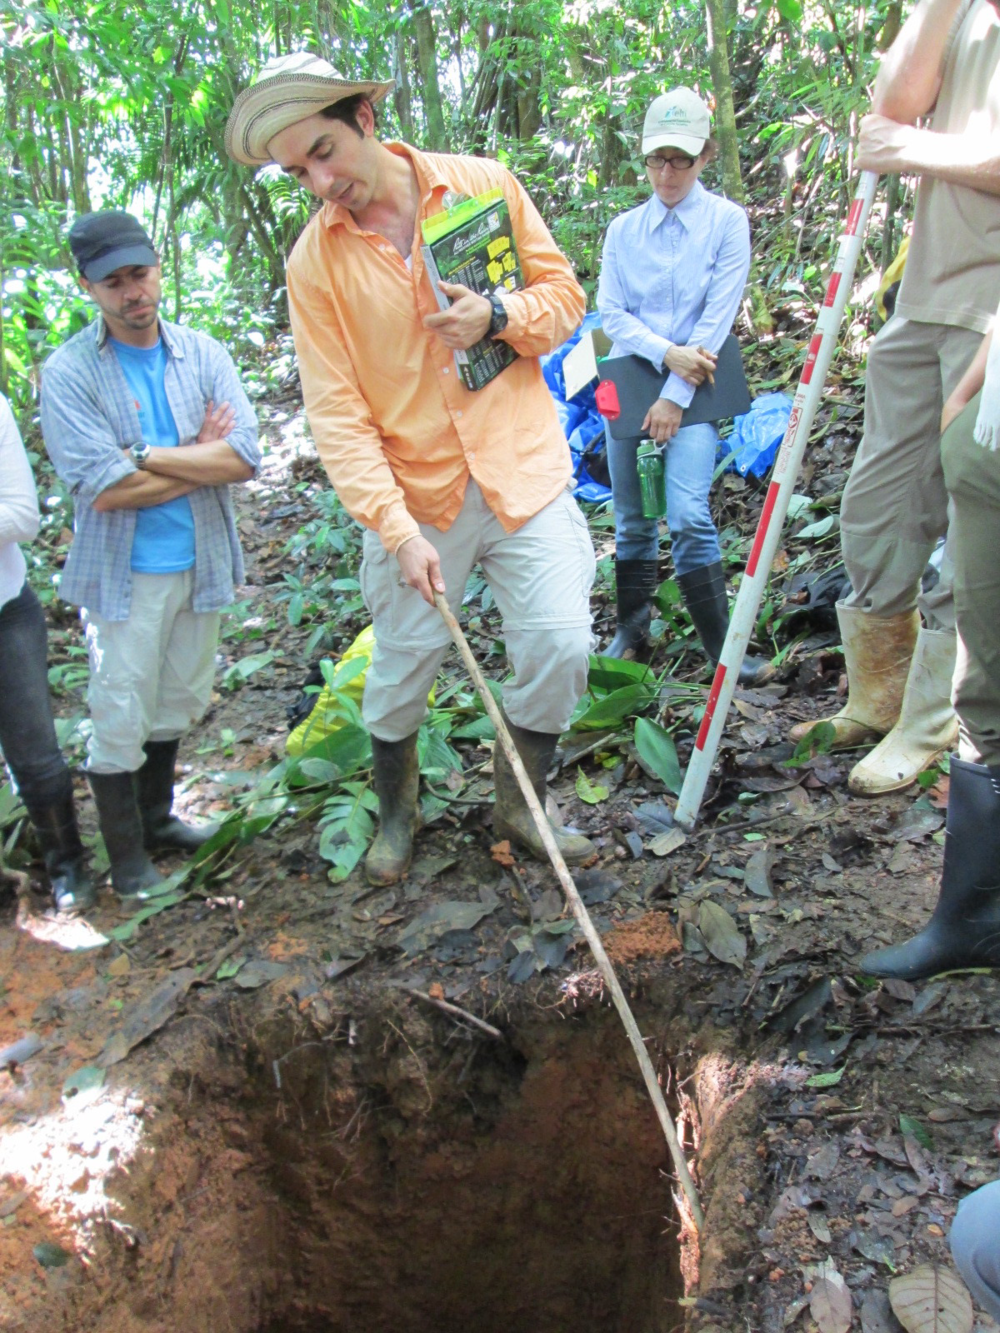 Instructor Jacob Slusser highlighting the characteristics of tropical soils during the forest ecology module of a forest restoration course (August 2013). Photo courtesy Saskia Santamaria.